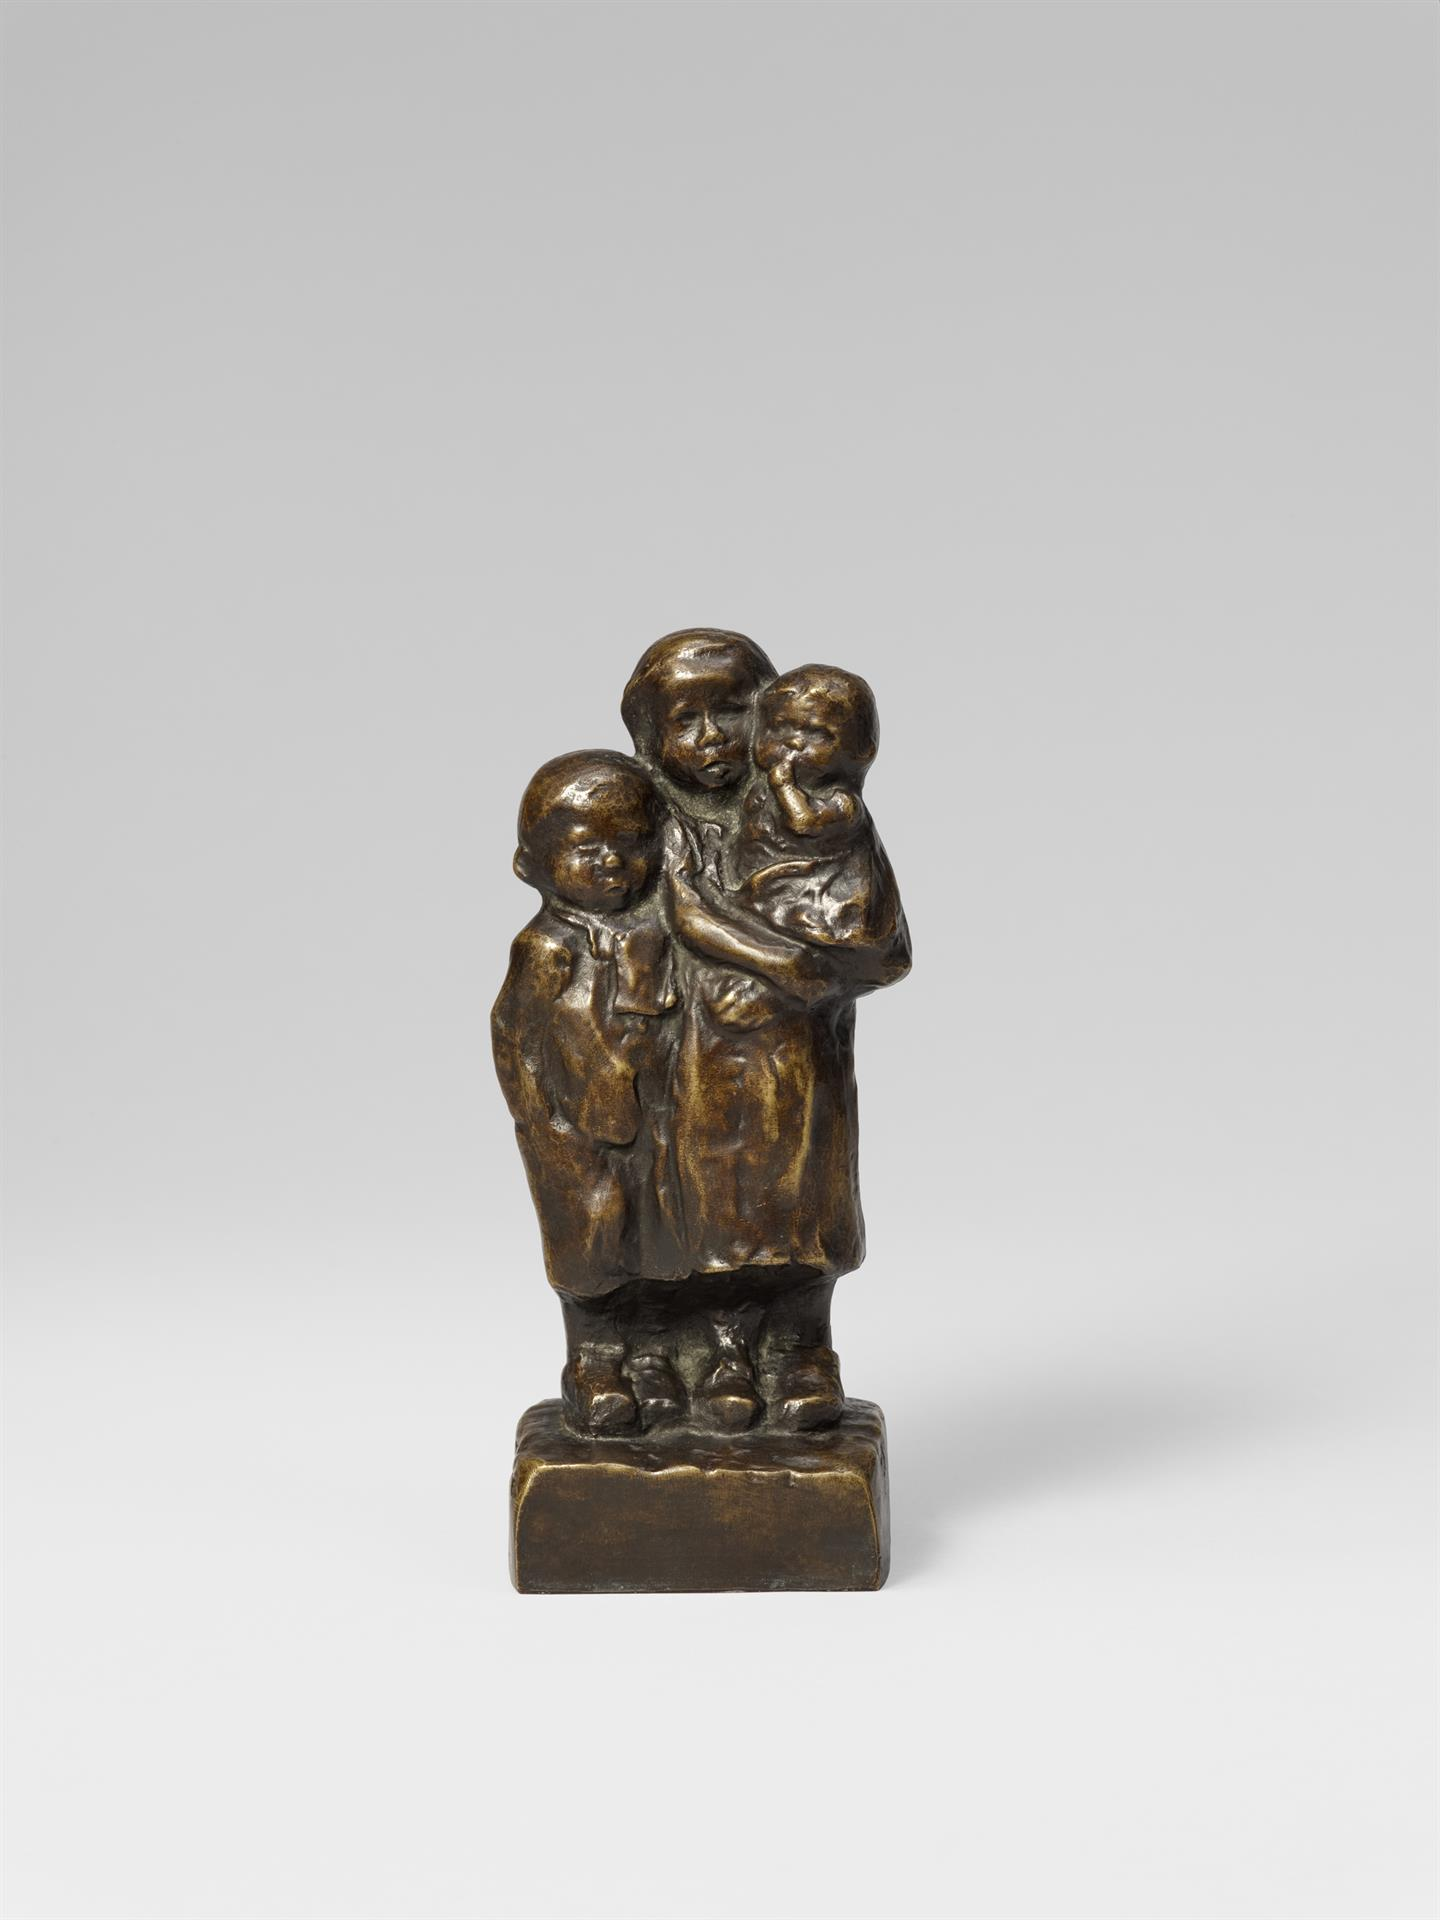 Käthe Kollwitz, Group of Children, presumably 1936/1937, bronze, Seeler 33 I.B.8., Cologne Kollwitz Collection © Käthe Kollwitz Museum Köln